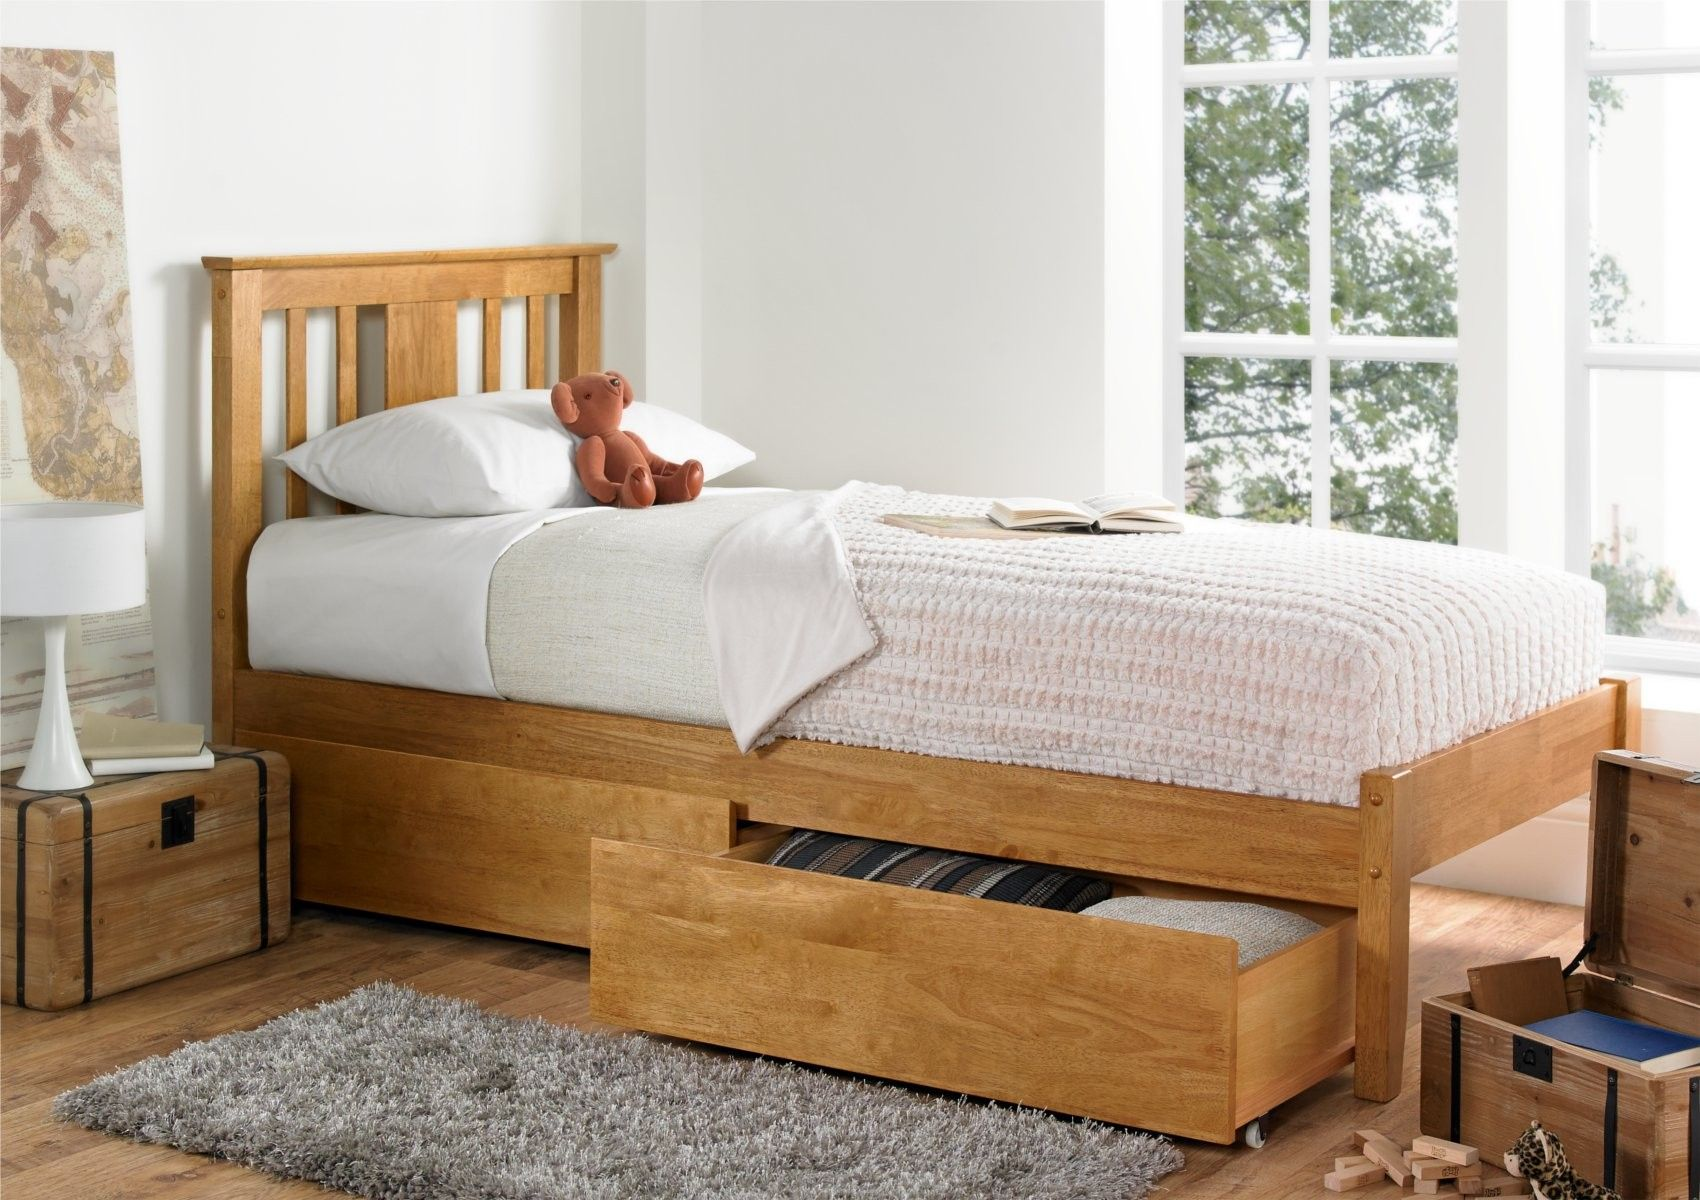 Perfect For Both Children And Adults A Like The Malmo Oak Bed Is